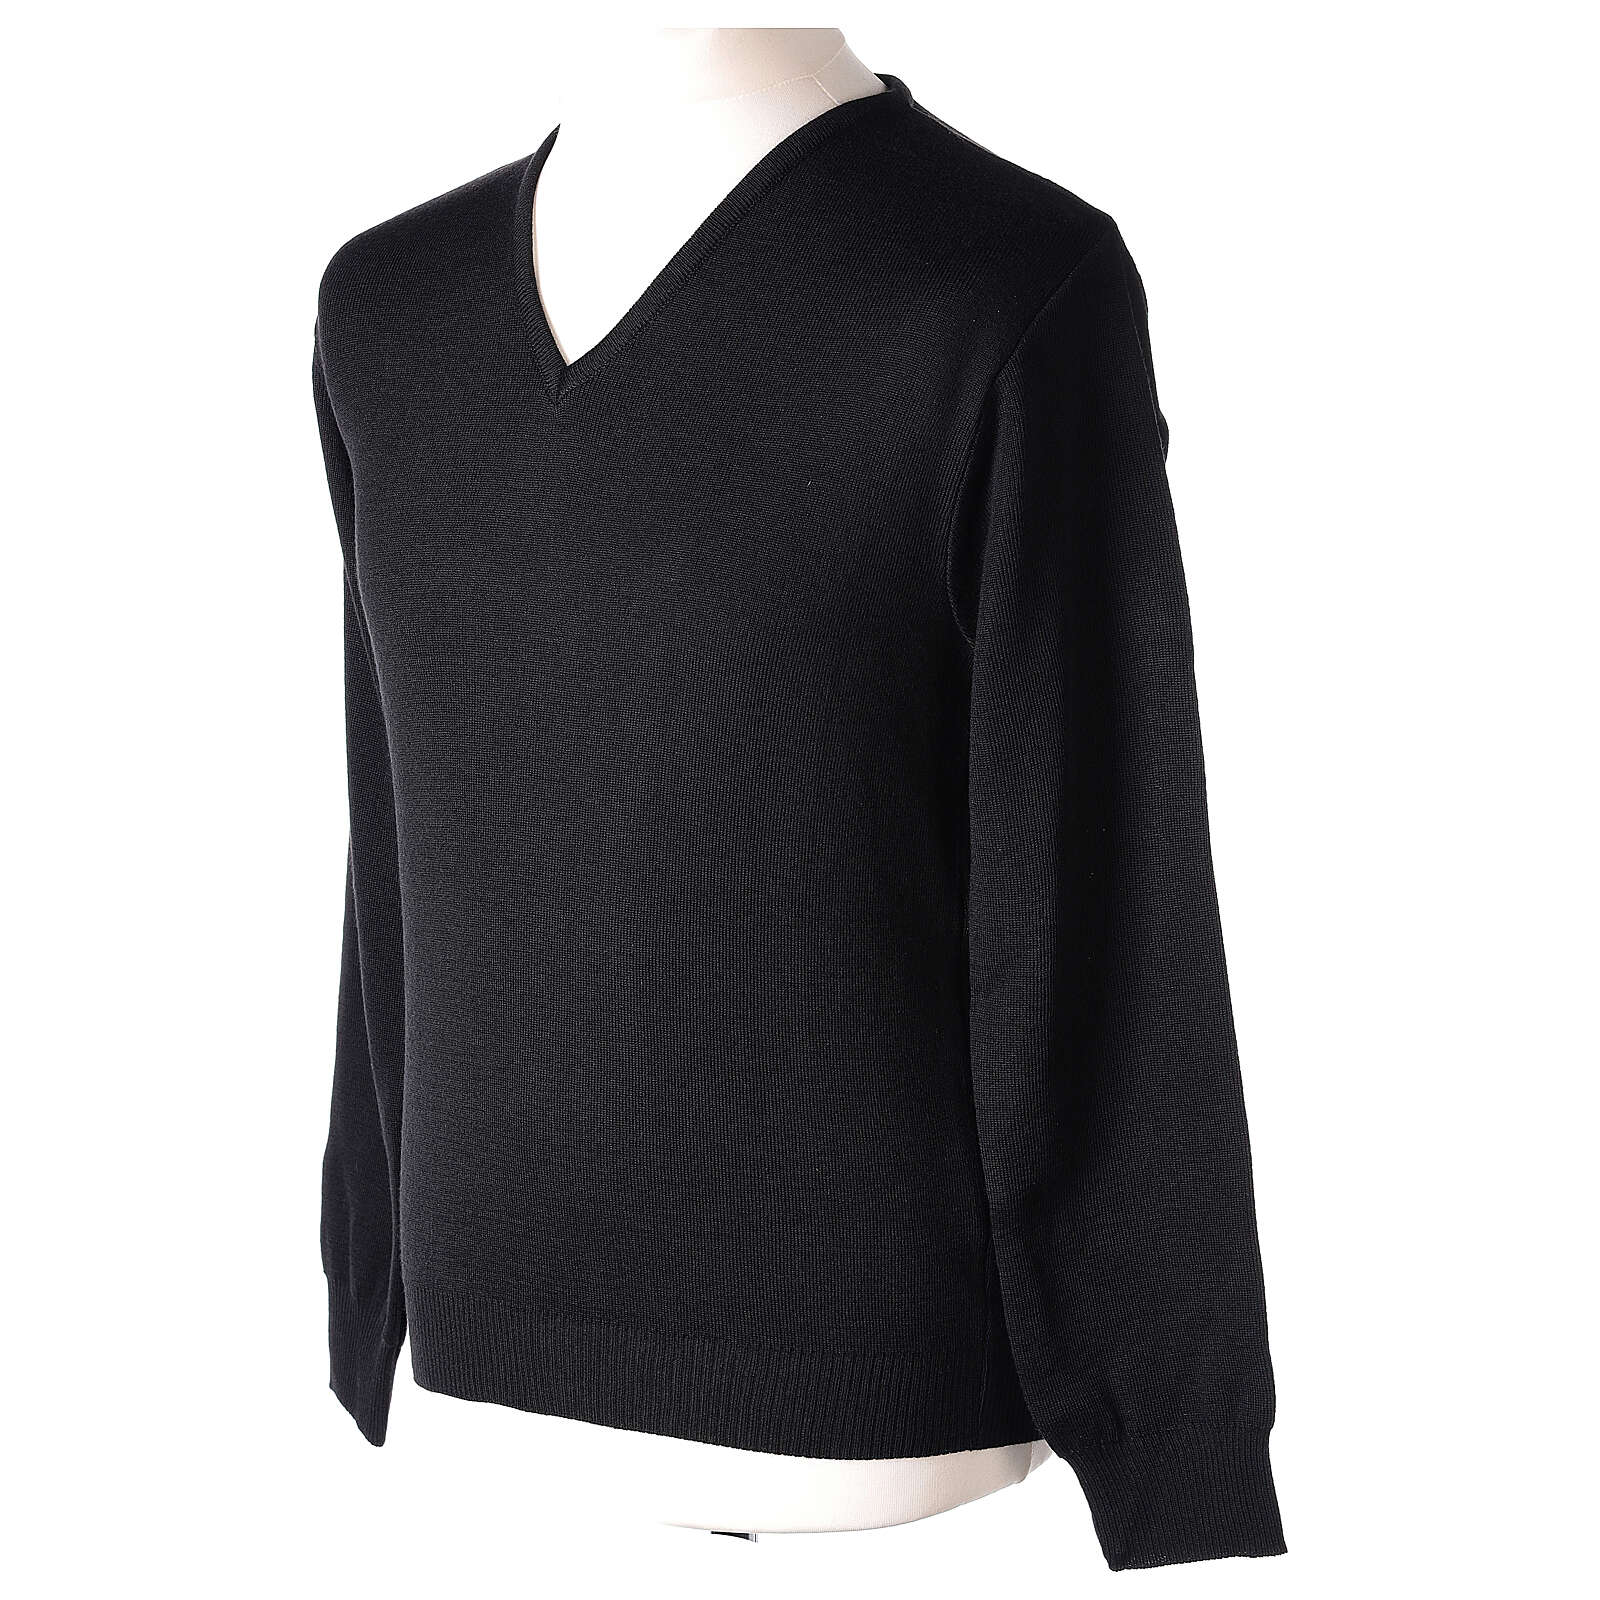 Clergy jumper V-neck black PLUS SIZES 50% merino wool 50% acrylic In Primis 4